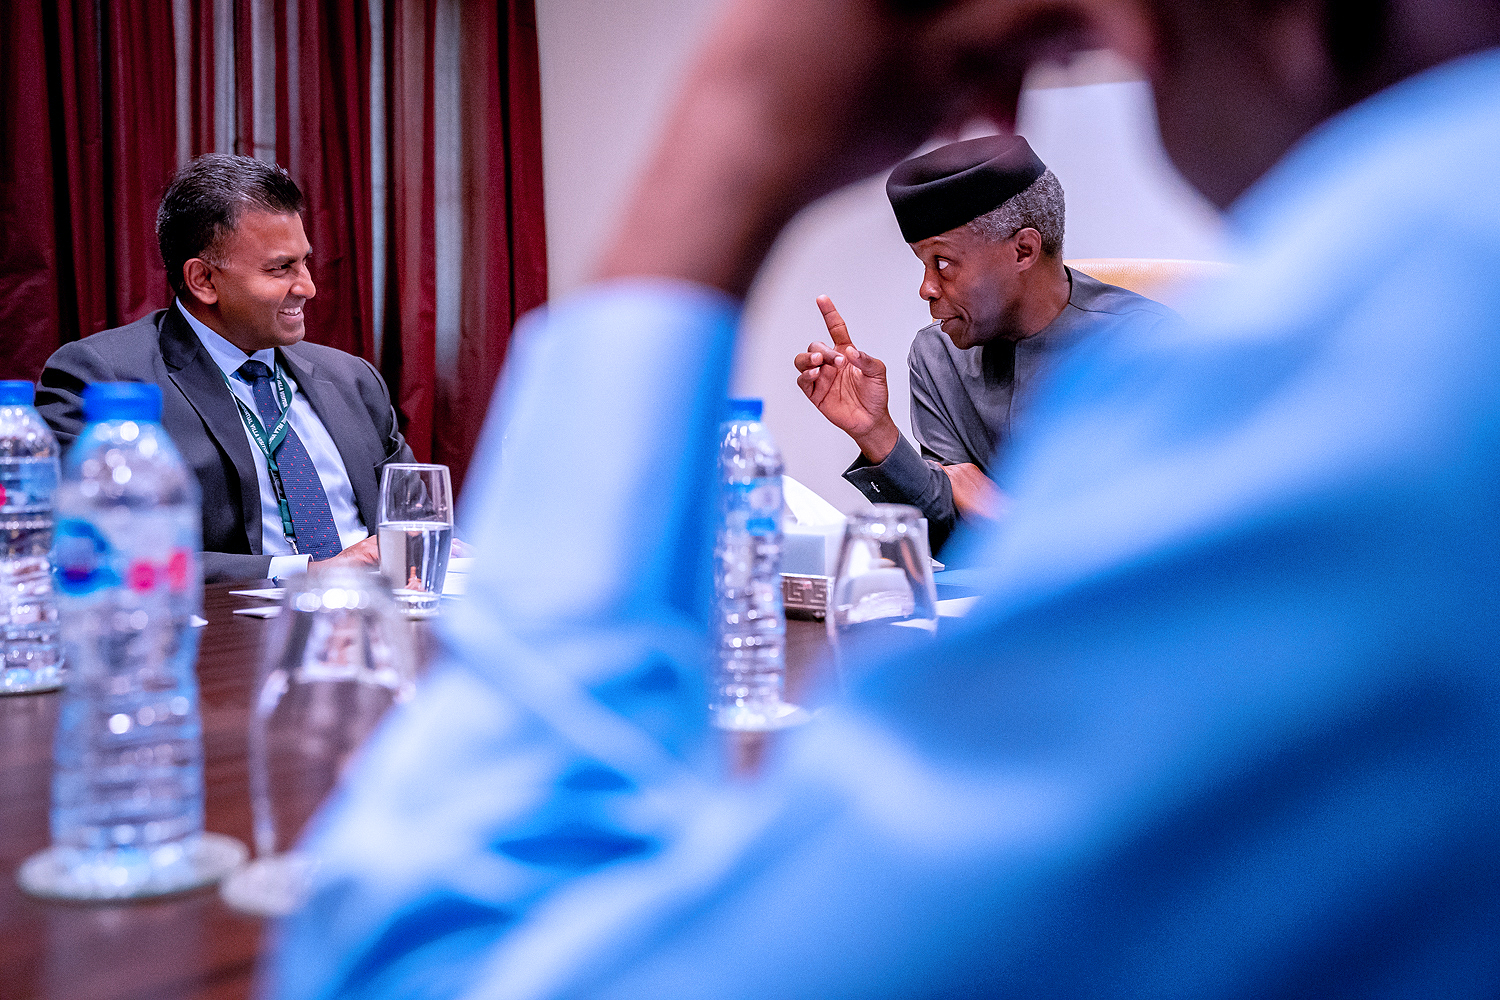 P&G High-Level Visit to The VP To Discuss P&G's Plan To Increase Its Investment In Local Manufacturing (Photos) - Brand Spur